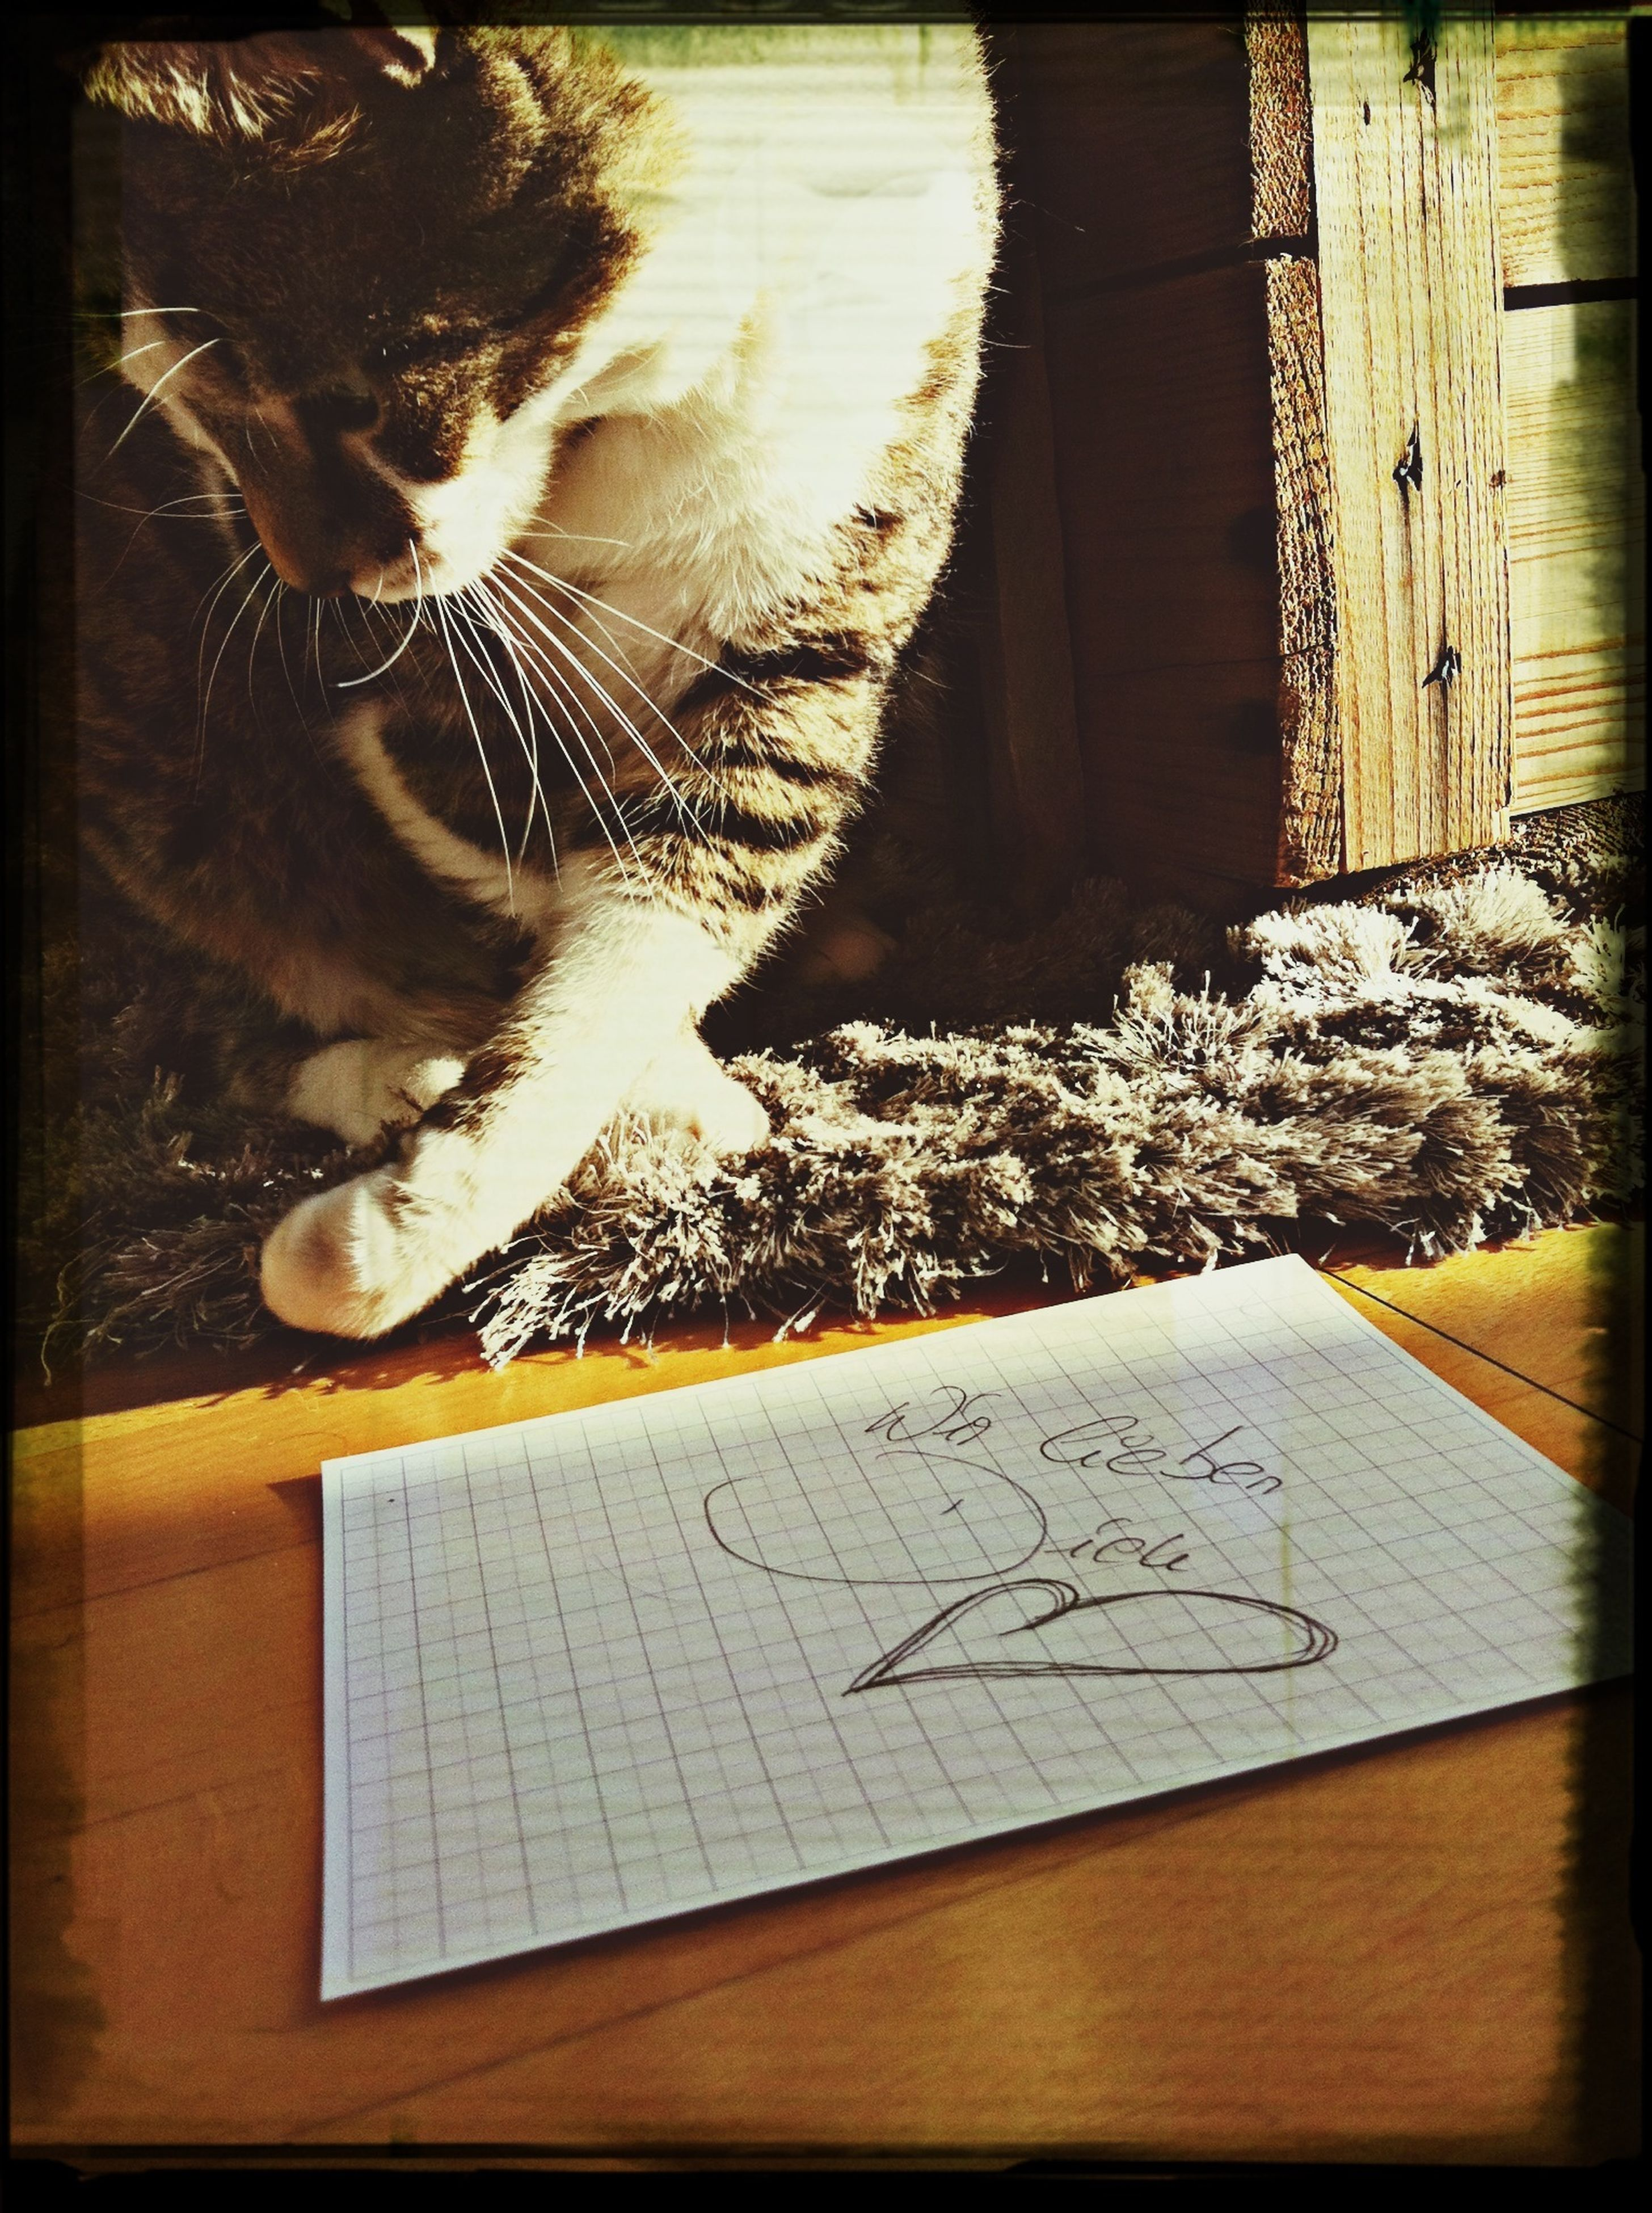 transfer print, indoors, auto post production filter, domestic cat, table, pets, high angle view, domestic animals, cat, one animal, mammal, animal themes, close-up, wood - material, home interior, feline, no people, sunlight, paper, elevated view